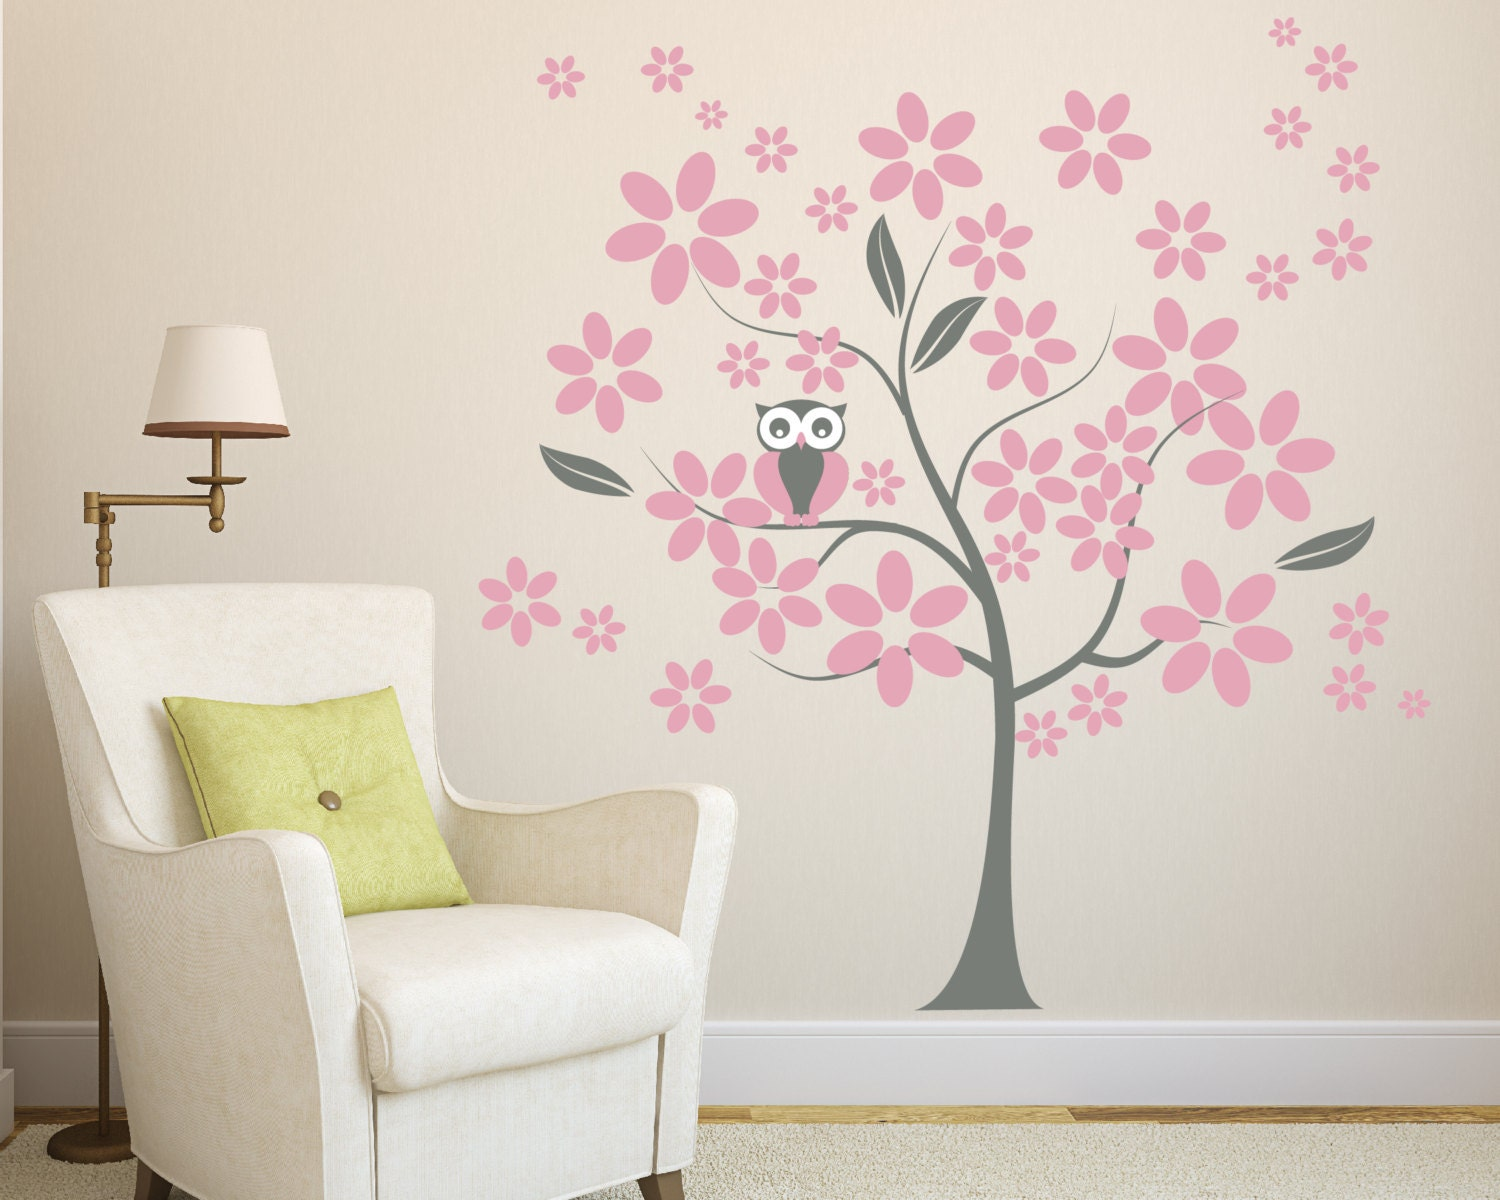 wall decals flowers tree with owl wall decal. Black Bedroom Furniture Sets. Home Design Ideas